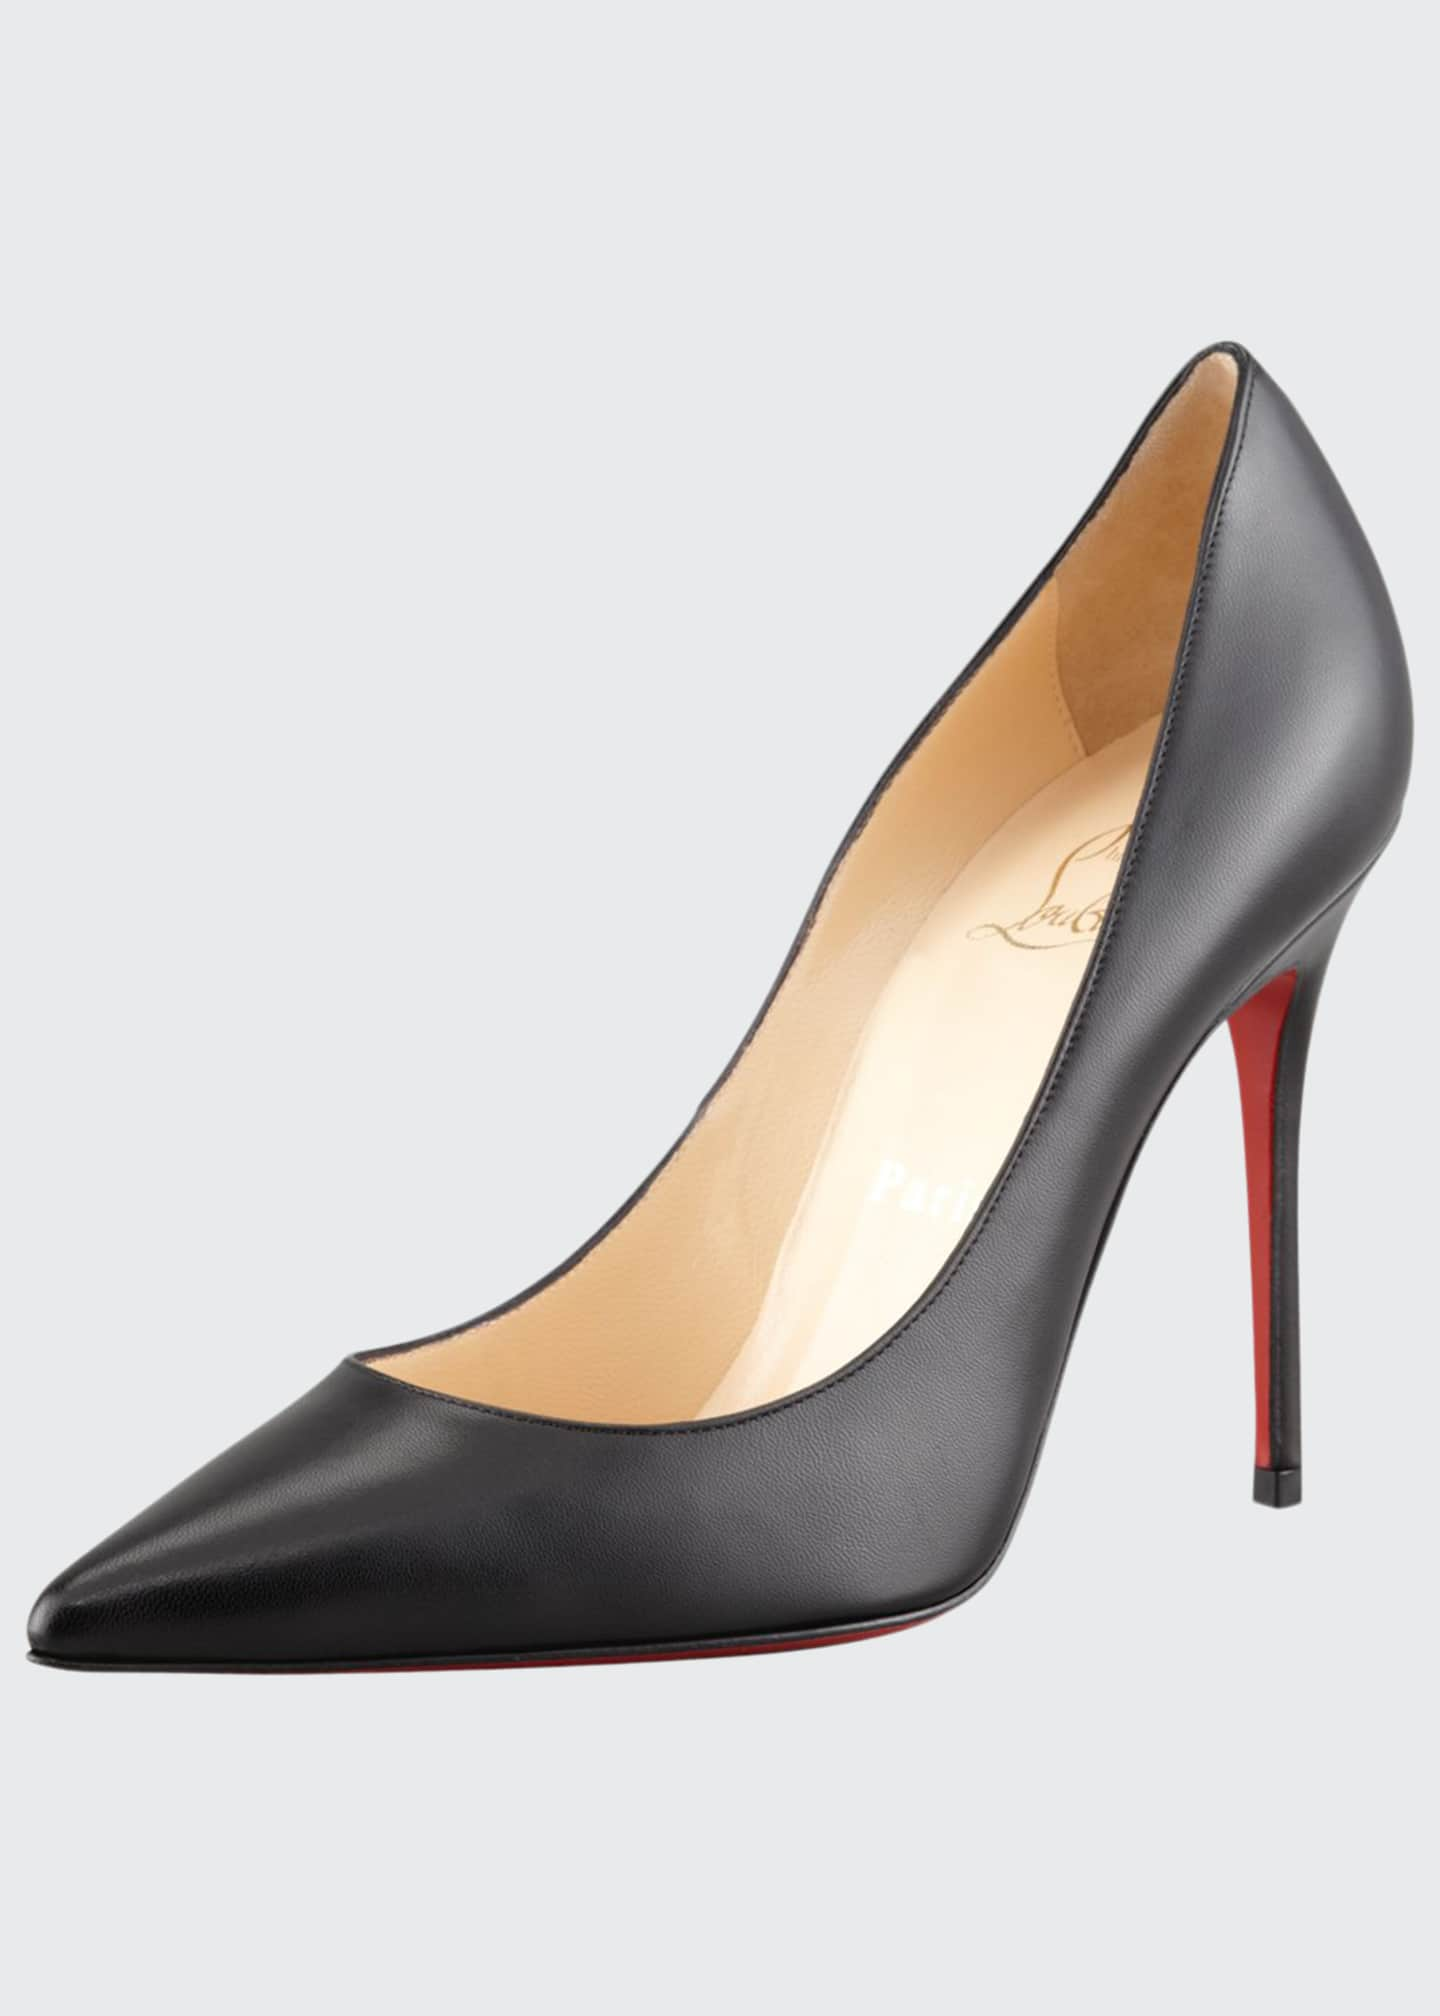 Christian Louboutin Decollette Red Sole Pumps, Black